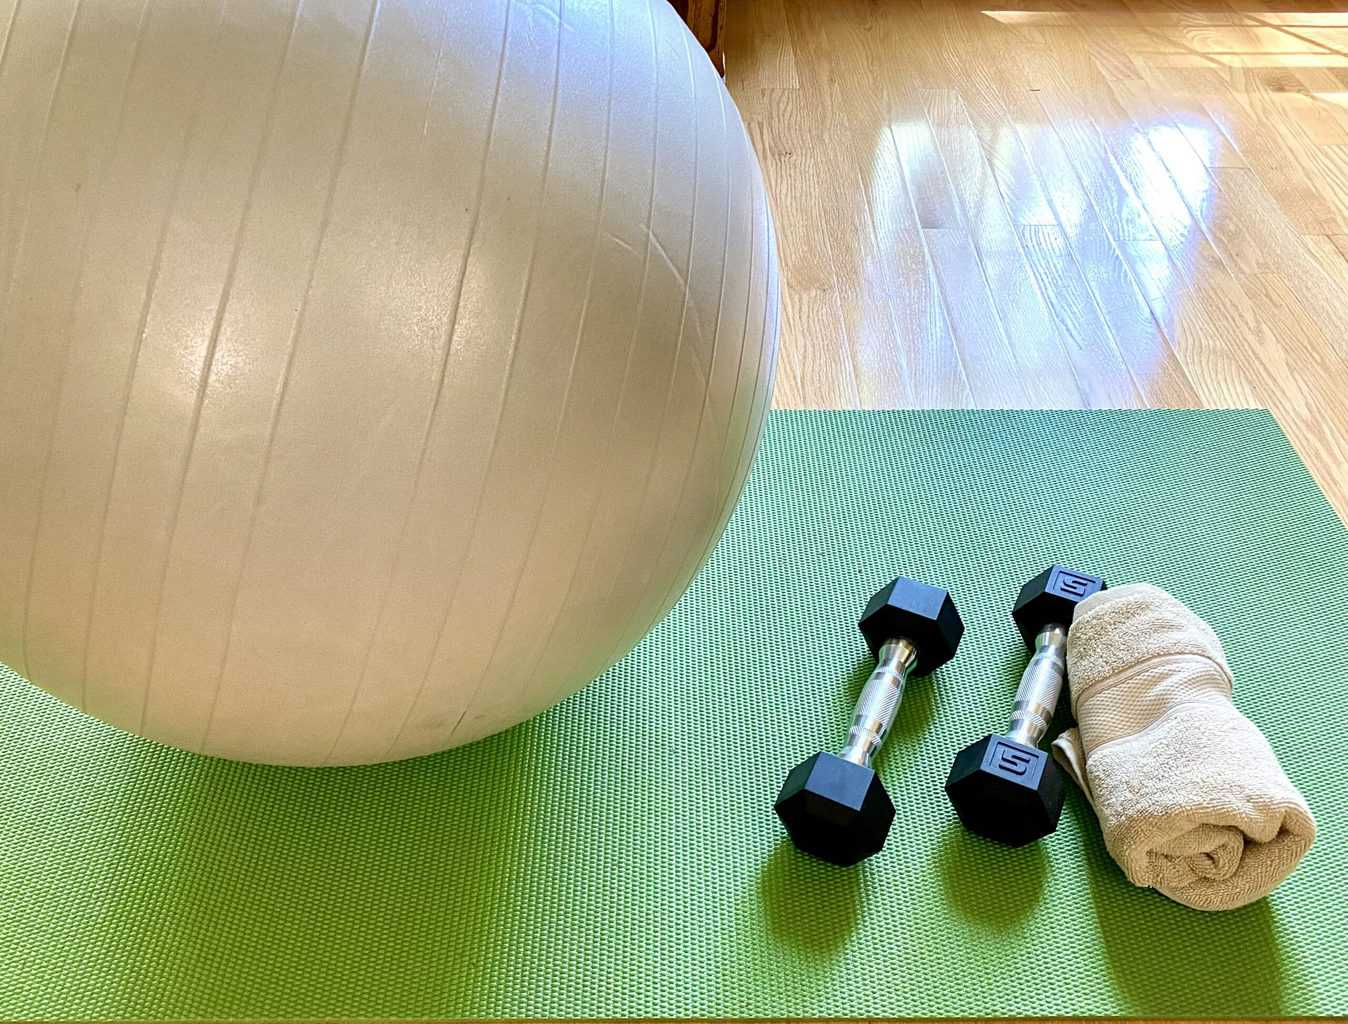 exercise ball, weights and towel on yoga mat